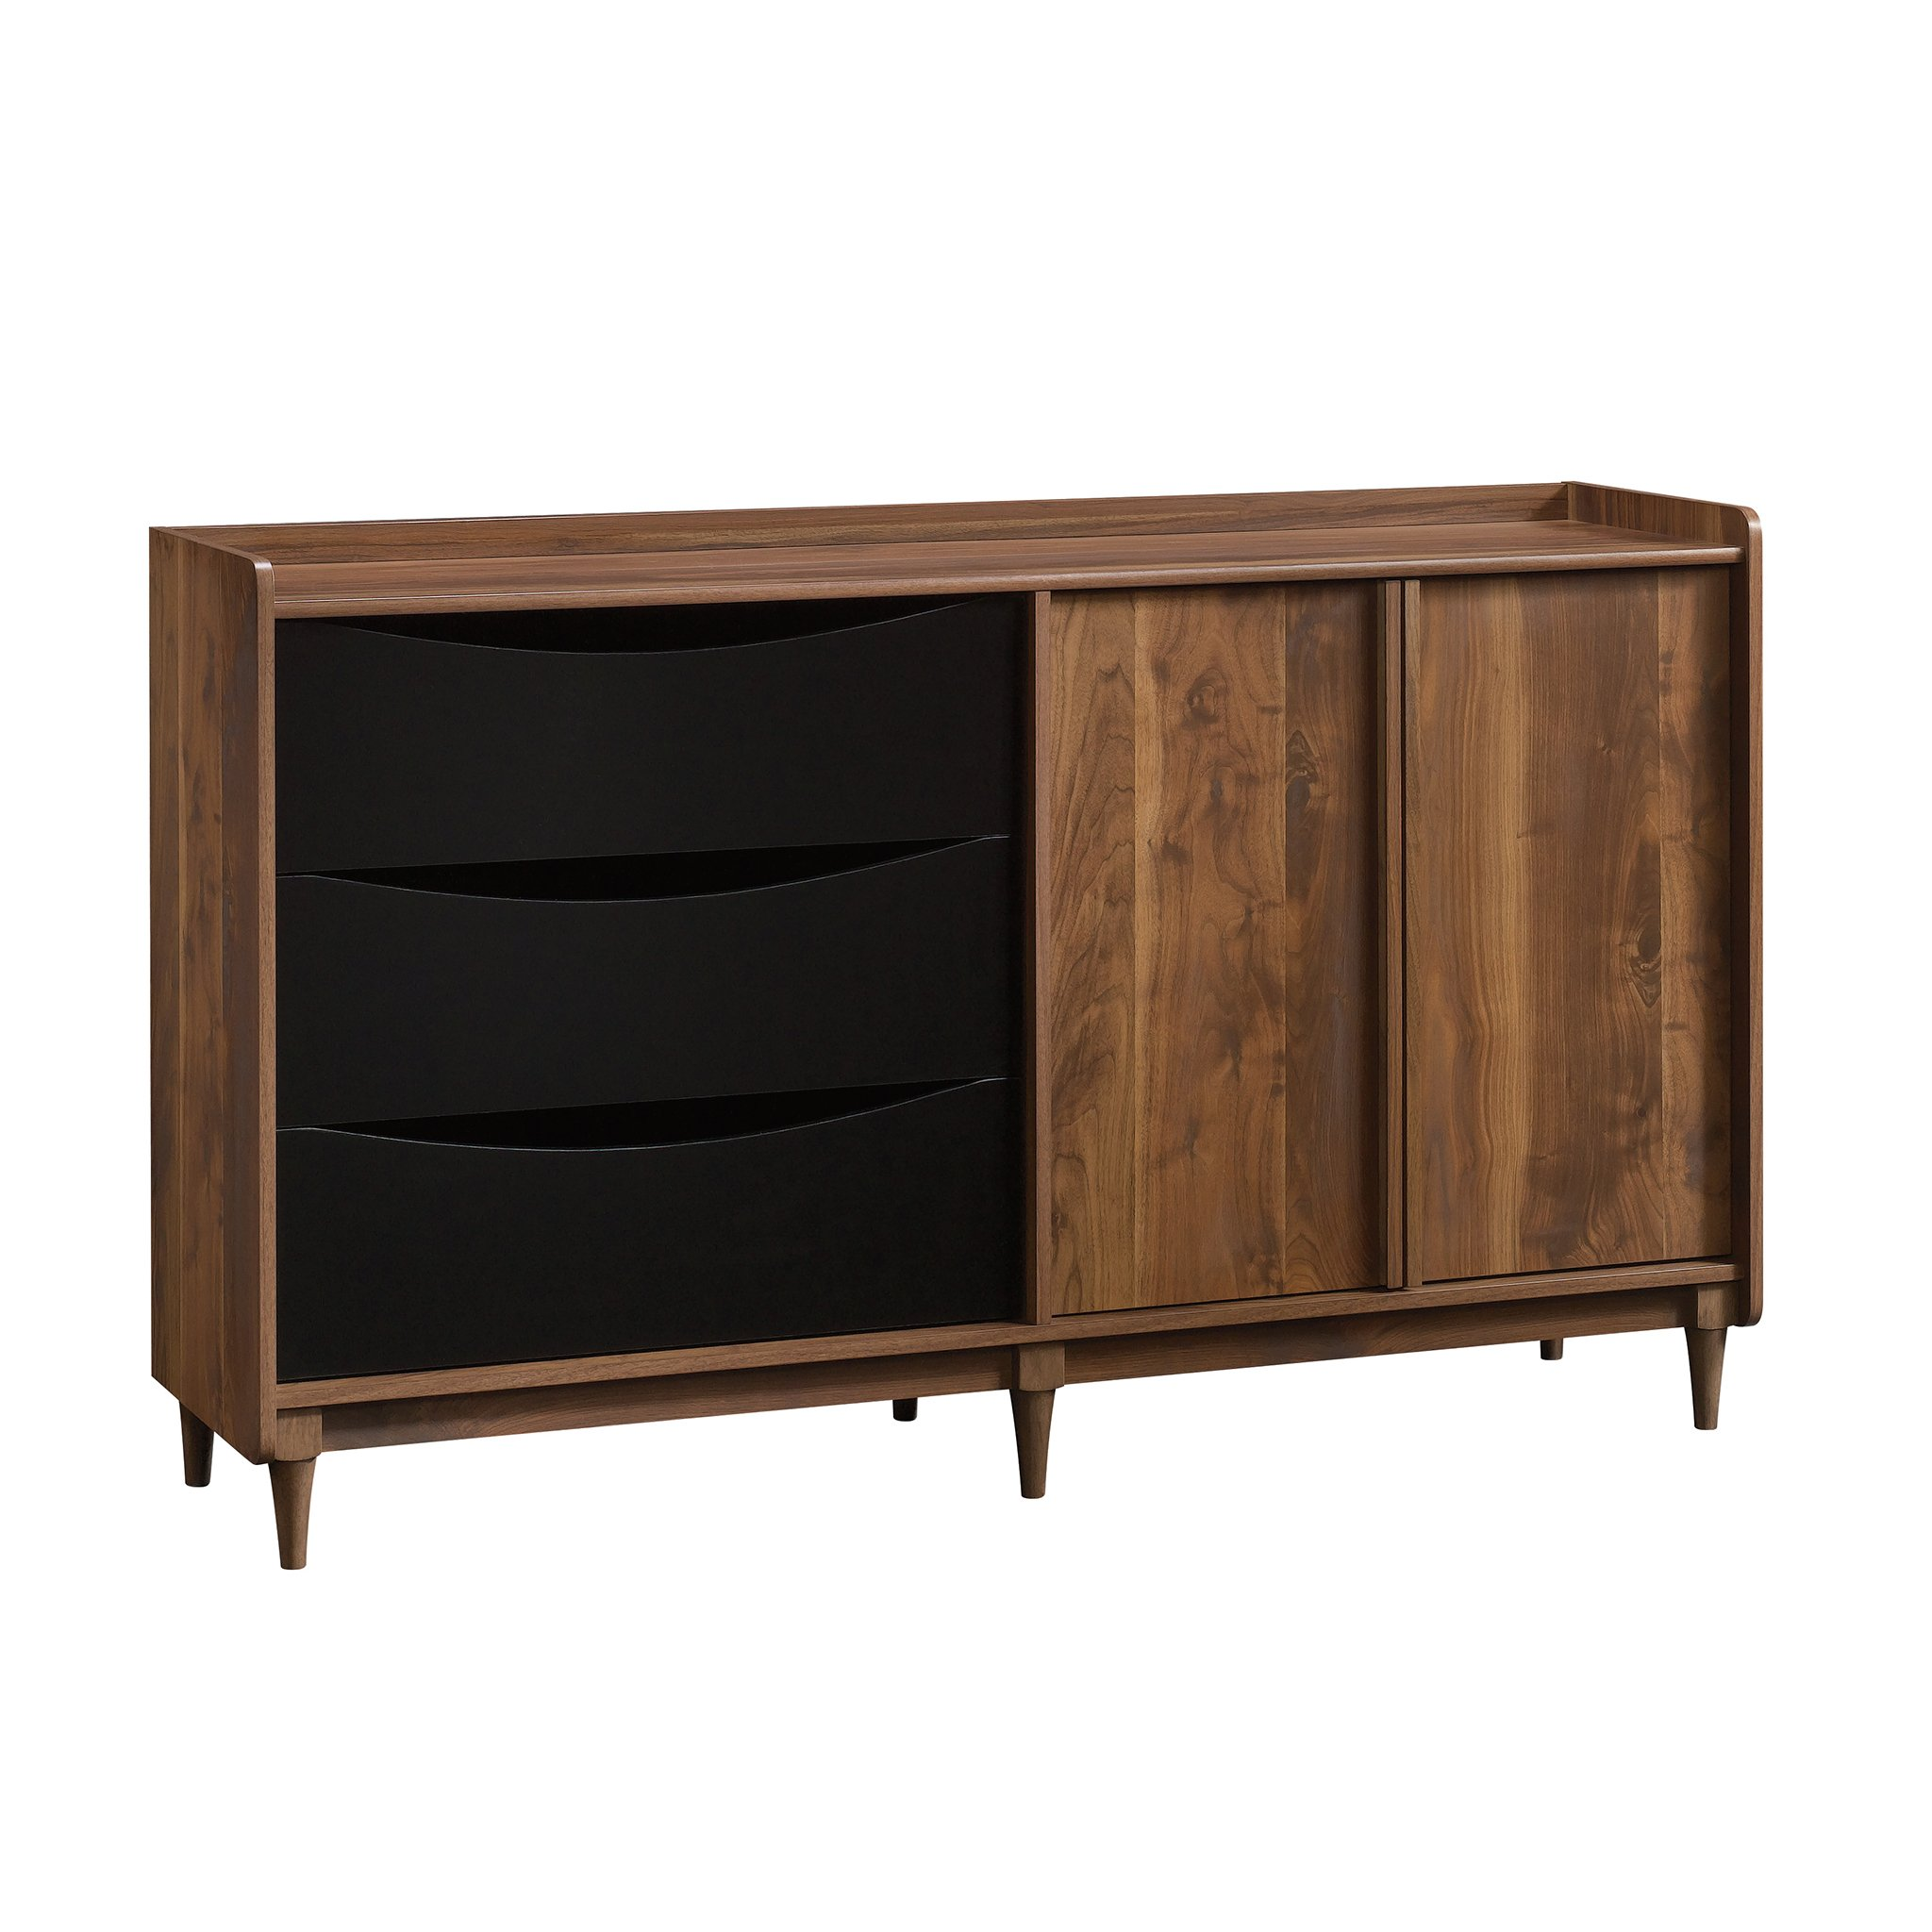 Sauder 420280 Harvey Park Entertainment Credenza, Grand Walnut Finish by Sauder (Image #1)